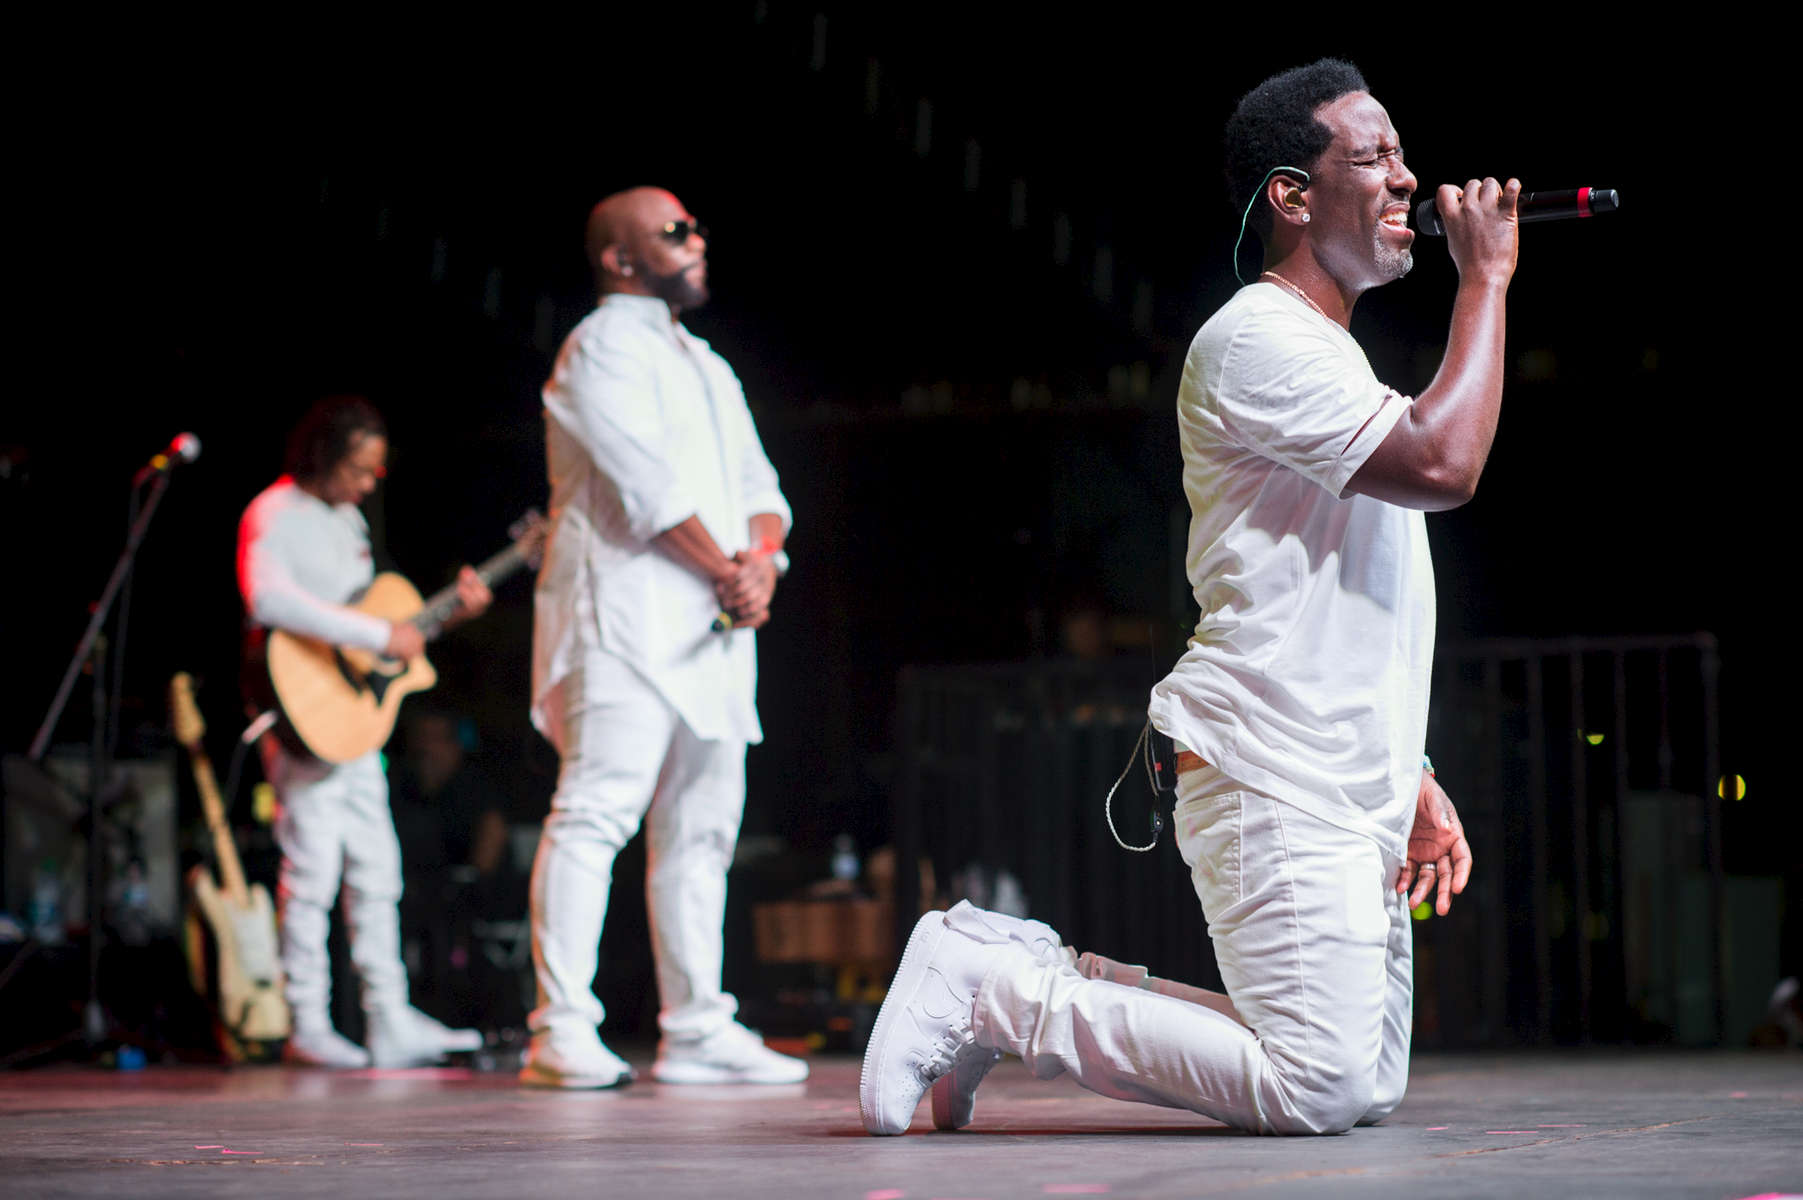 On bended knee, Boyz II Men singer Shawn Stockman performed for the audience with one sweet melody at the Paseo Stadium in Hagatna, Guam.  (Dec. 15, 2017)Photo by Nancy Borowick